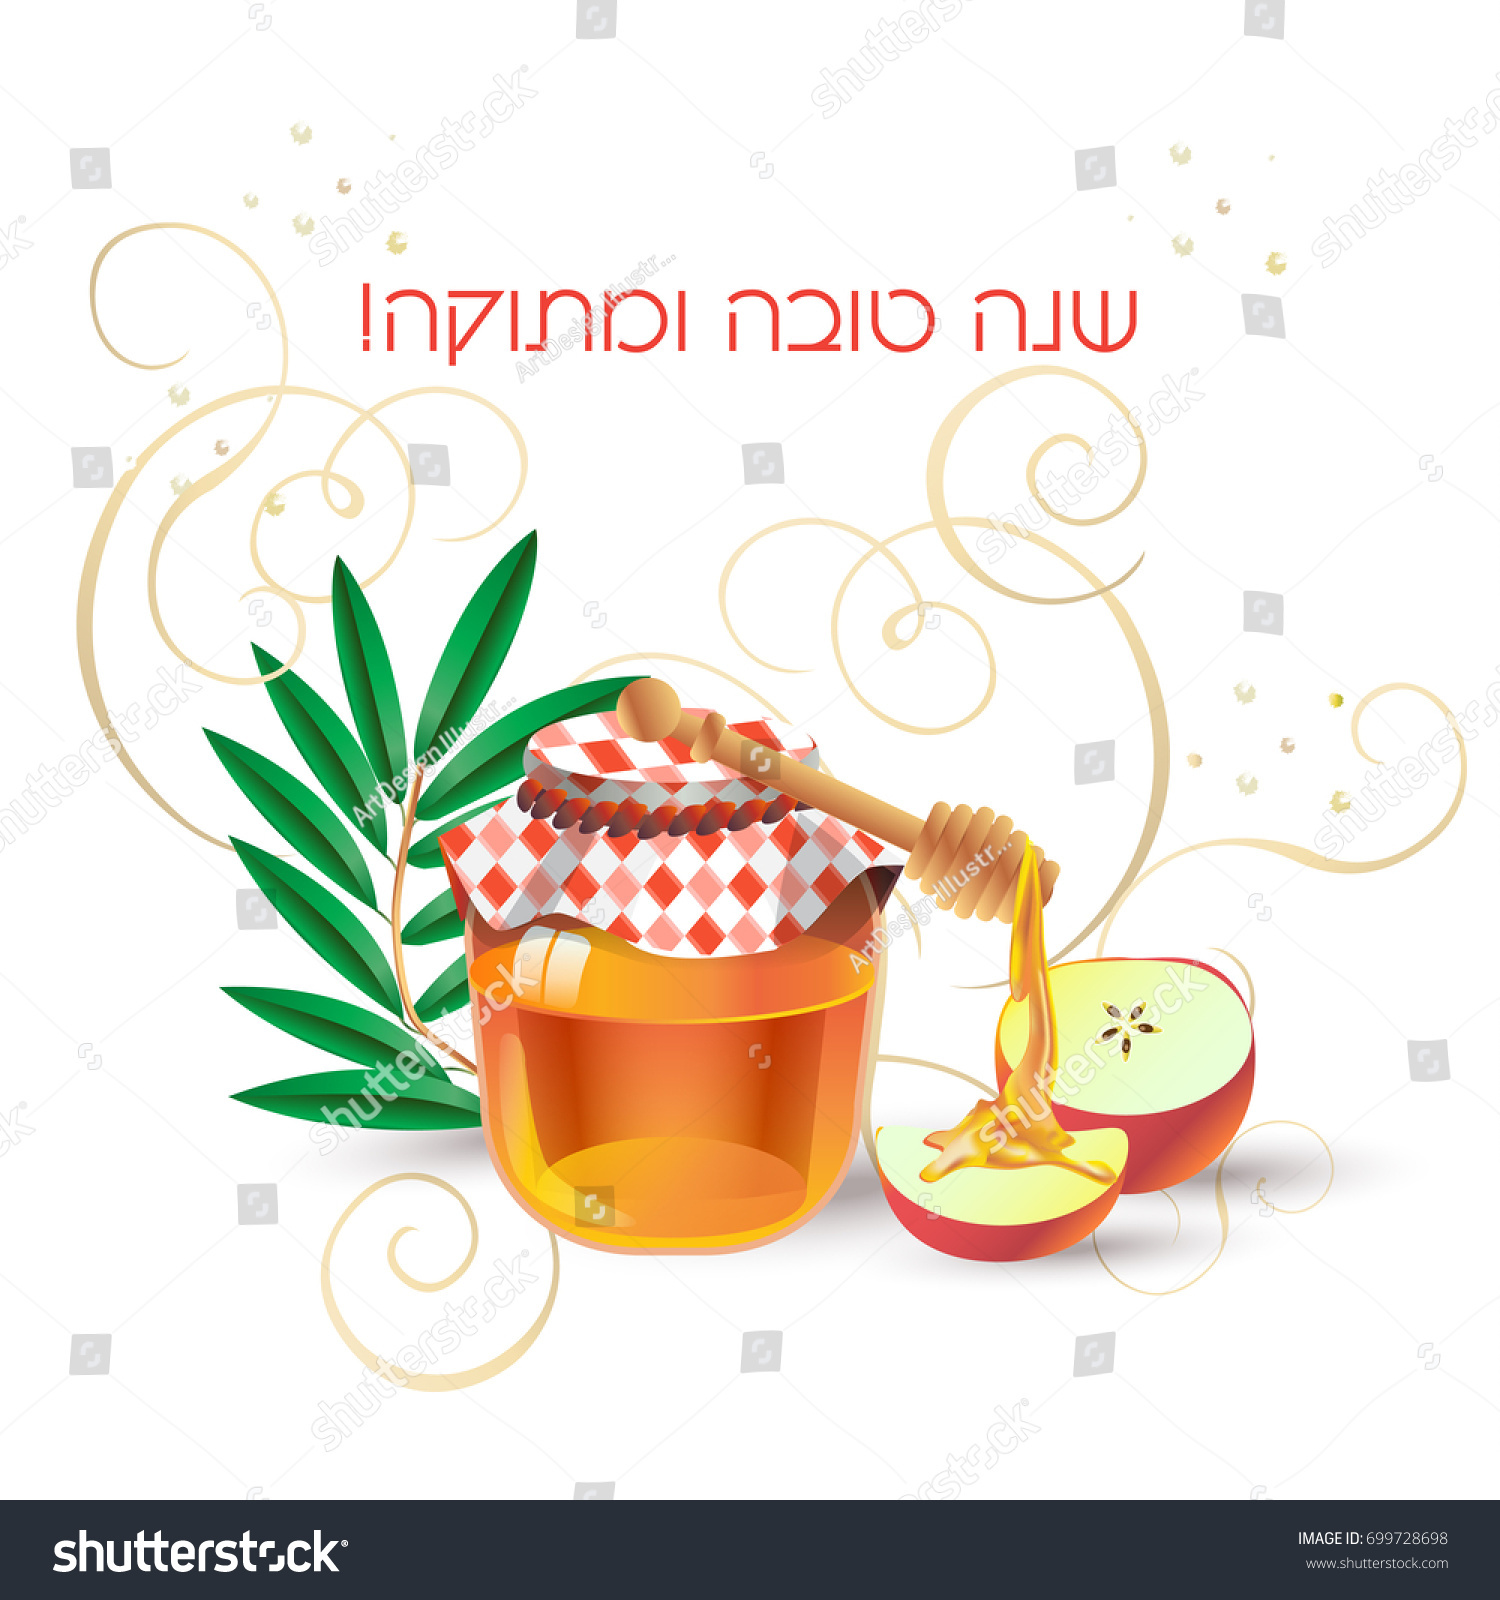 Rosh hashanah card happy jewish new stock vector 699728698 rosh hashanah card happy jewish new year rosh hashana greeting text shana kristyandbryce Choice Image